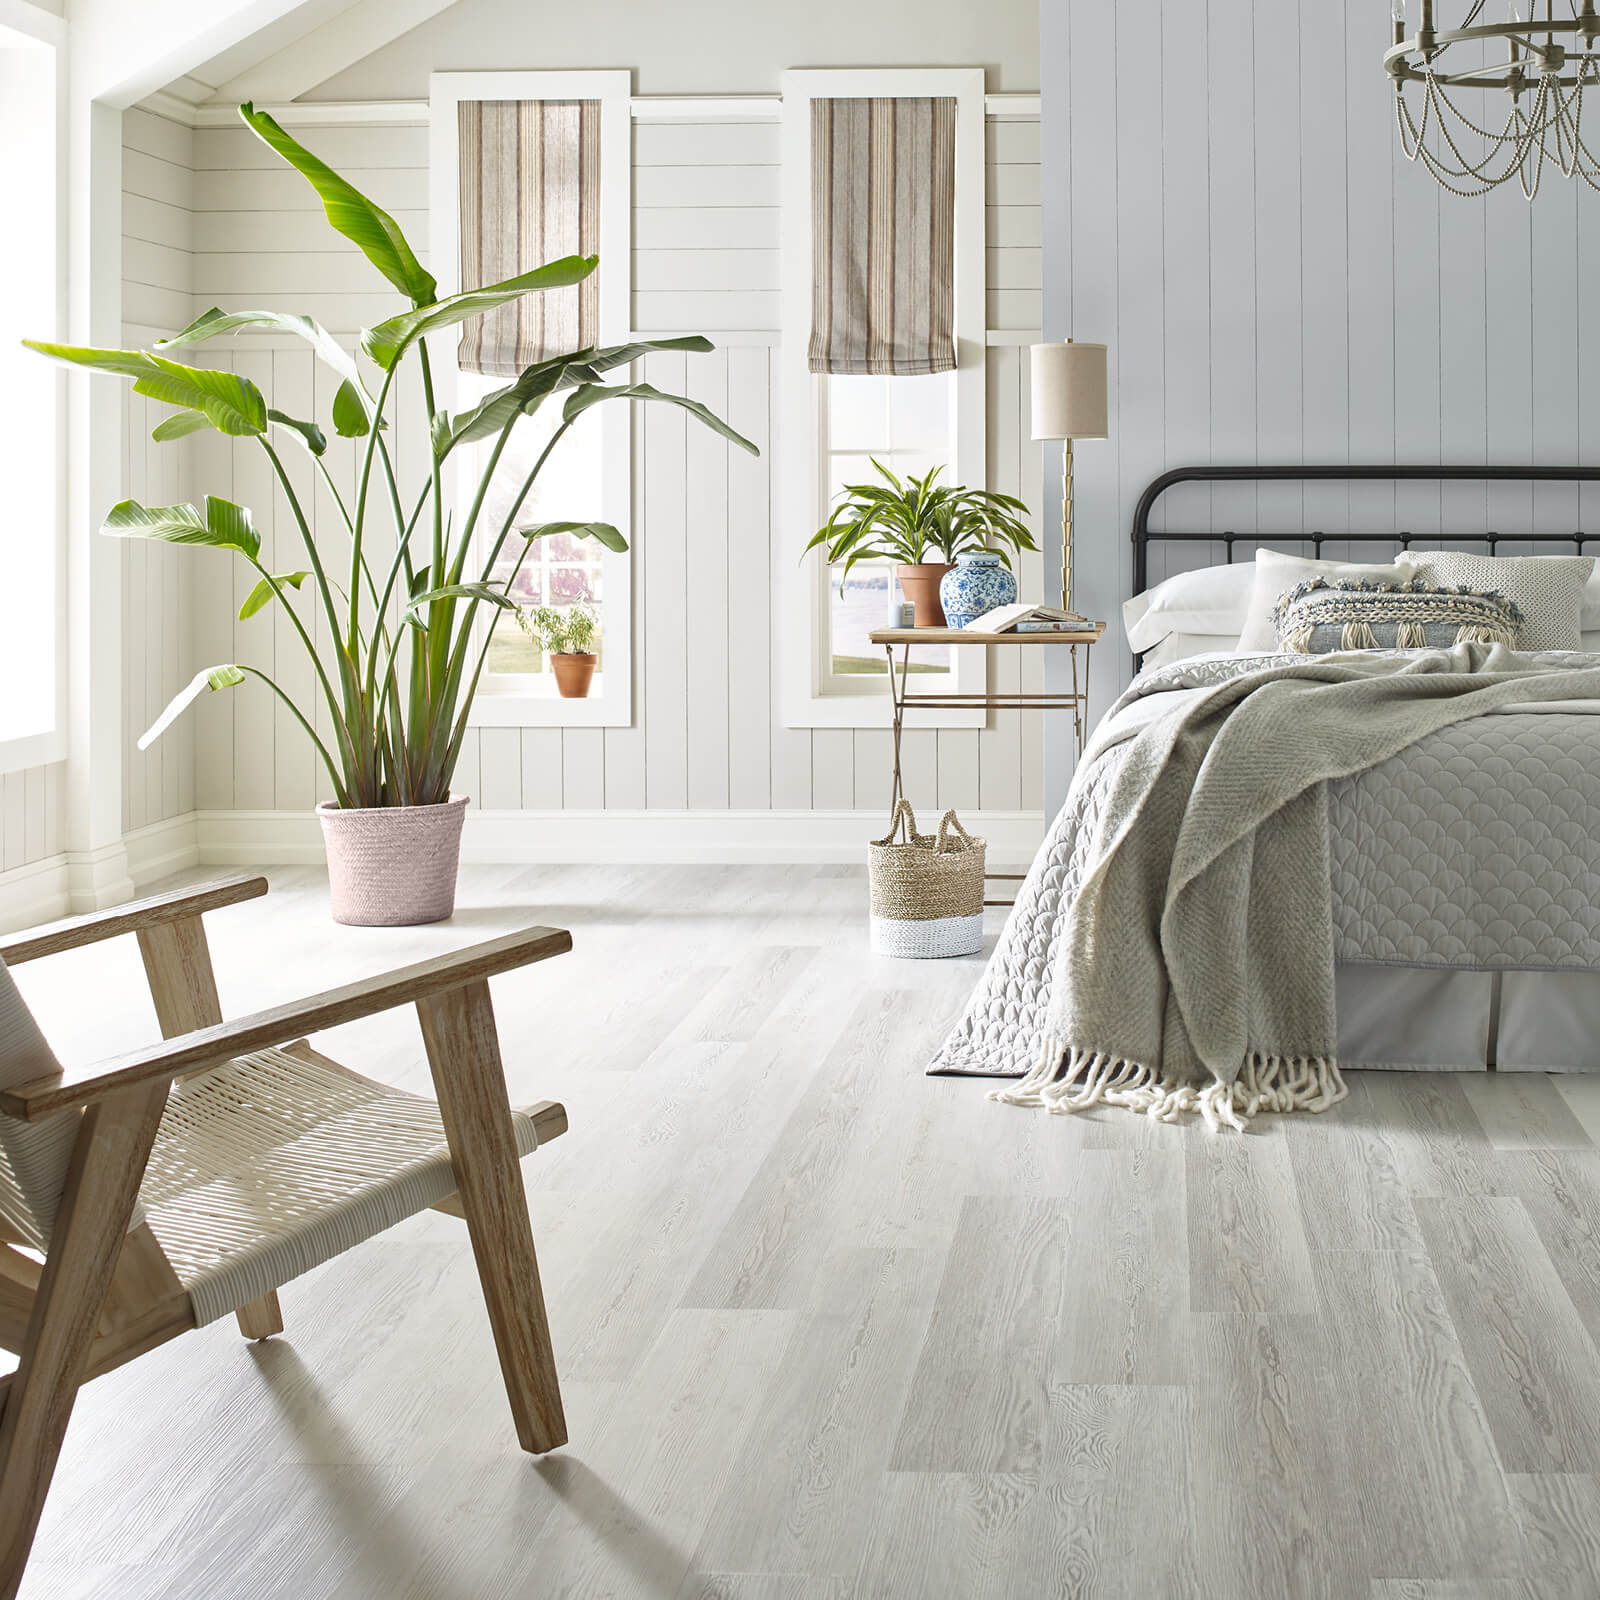 Bedroom vinyl flooring | Flooring By Design